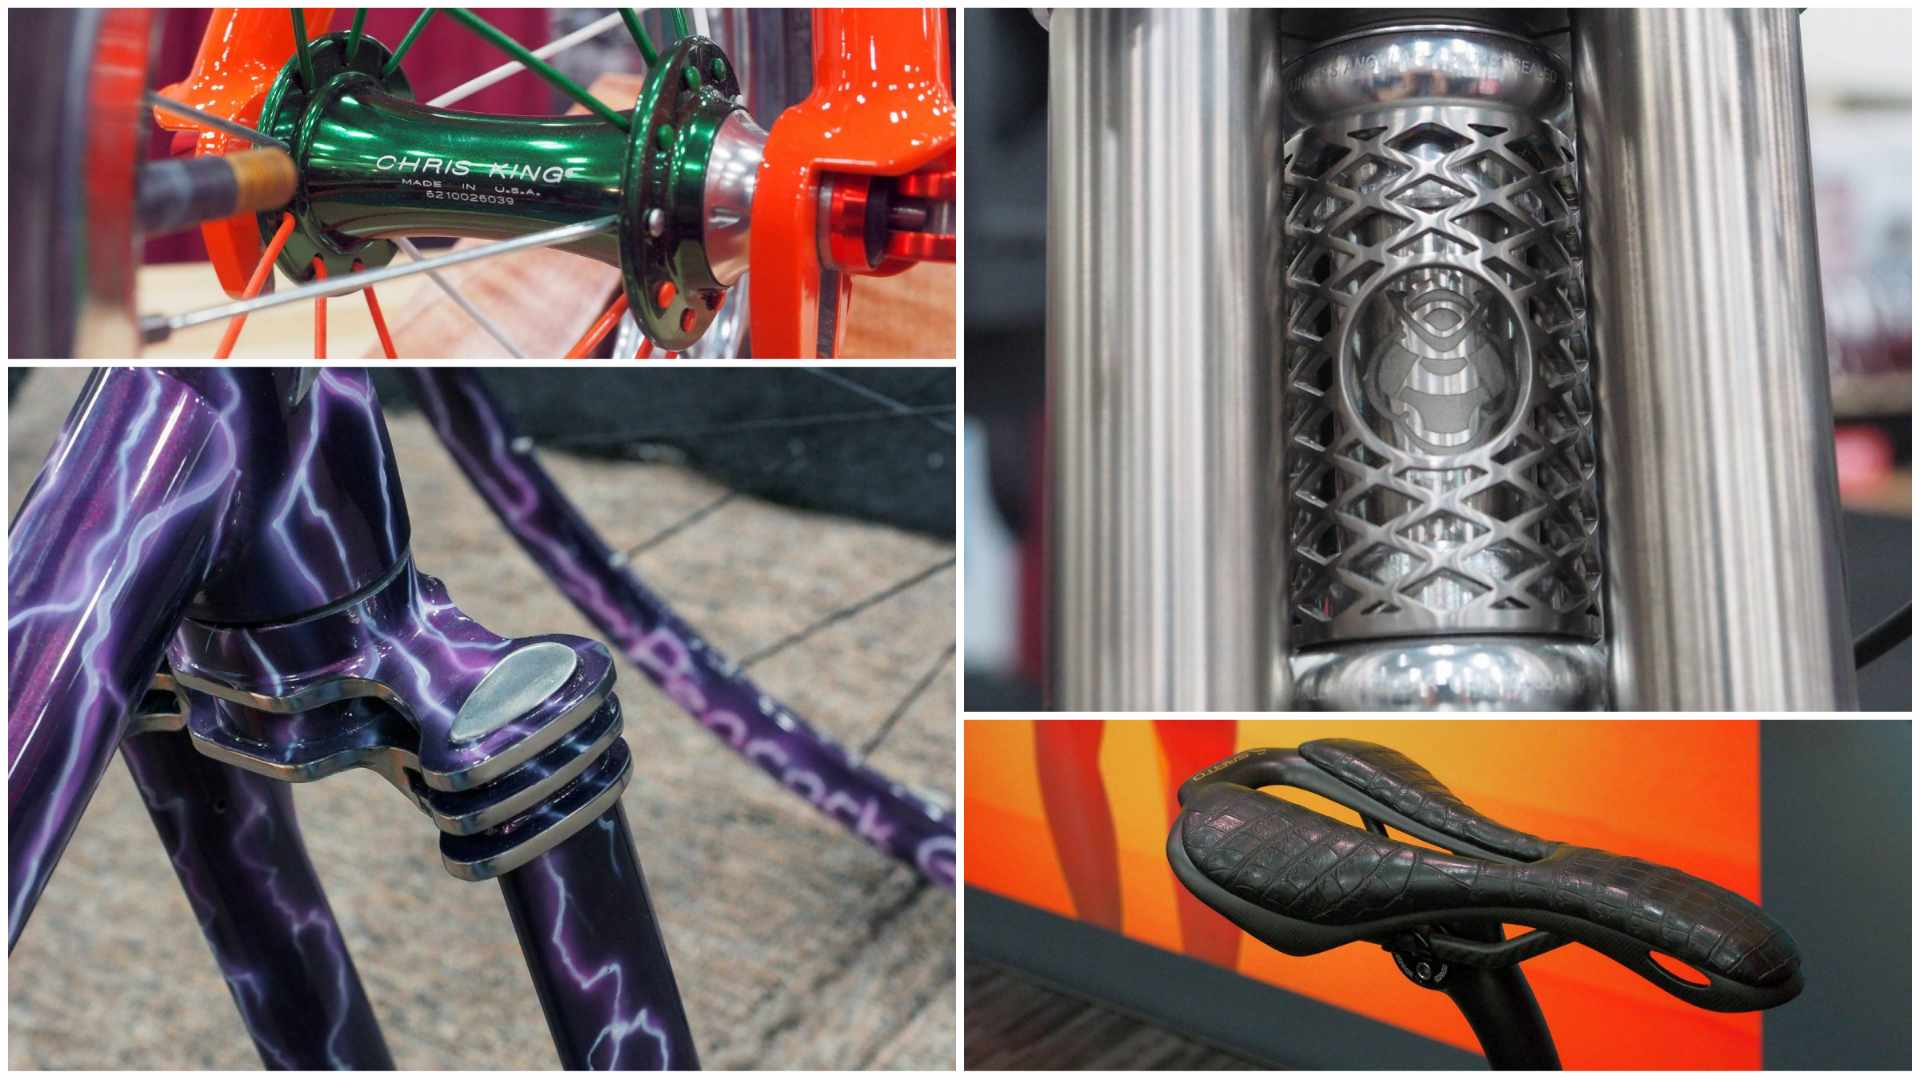 The North American Handmade Bicycle Show had some amazing custom craftsmanship